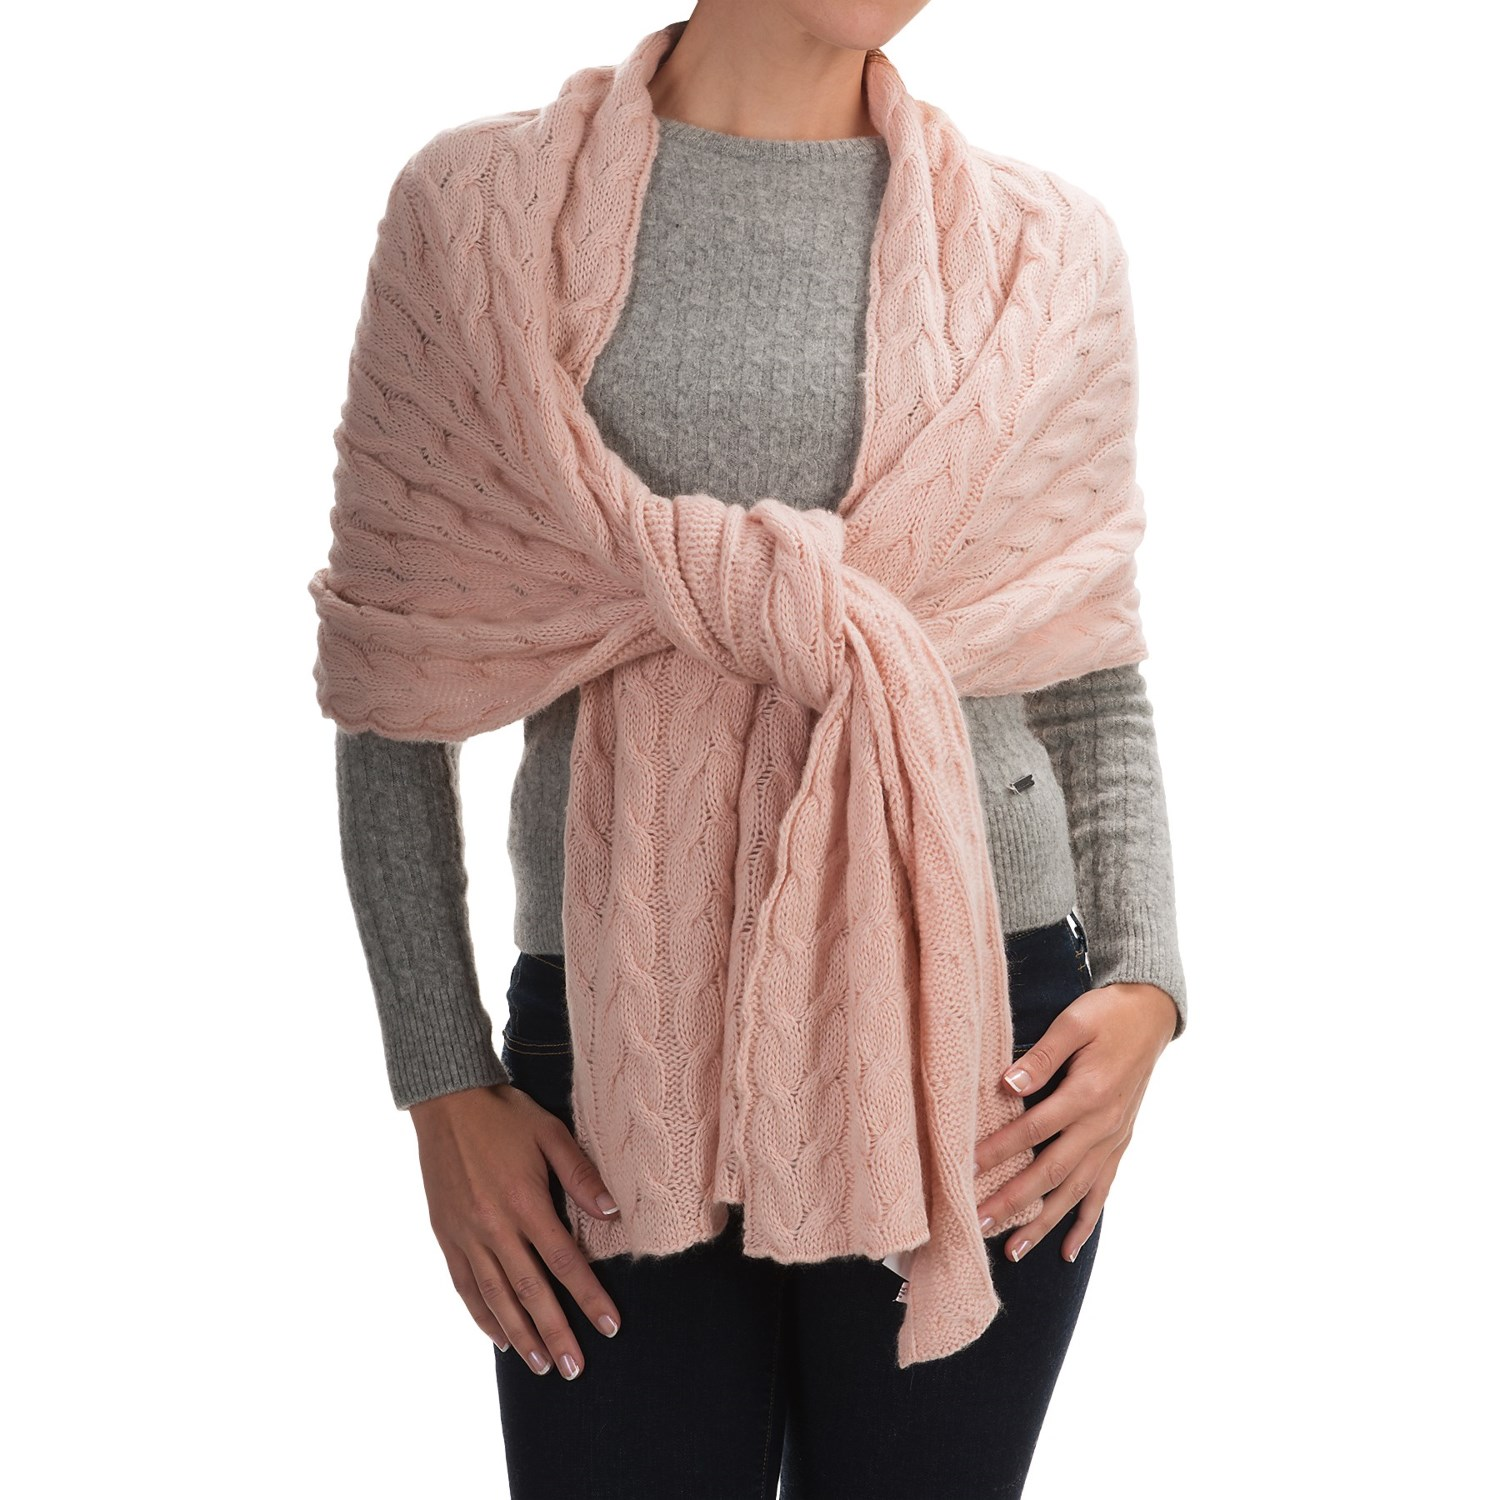 Portolano Cable-Knit Cashmere Wrap (For Women) - Save 60%